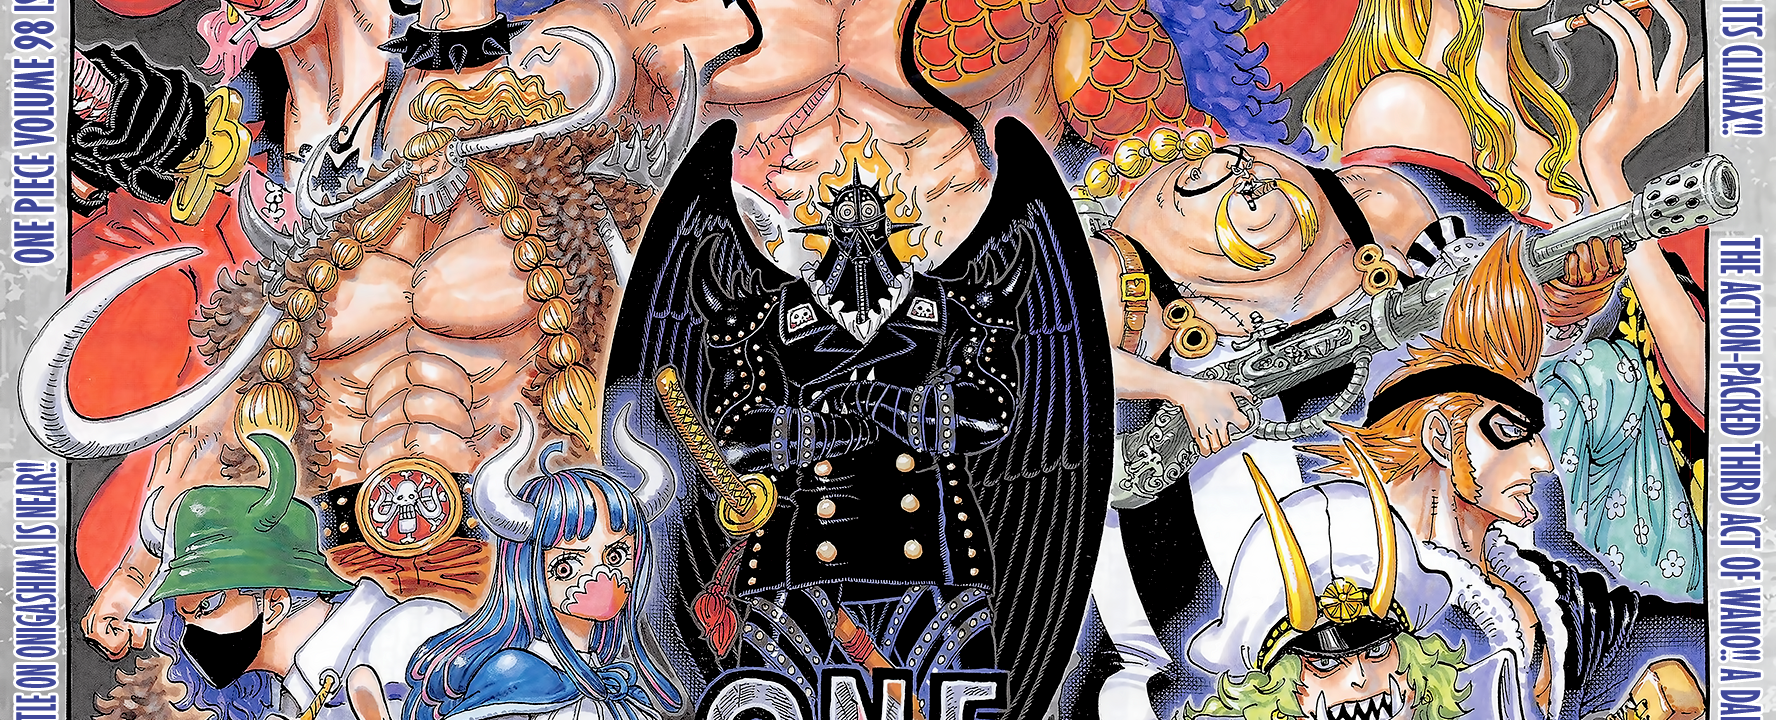 One Piece Chapter 1006 Cover Page